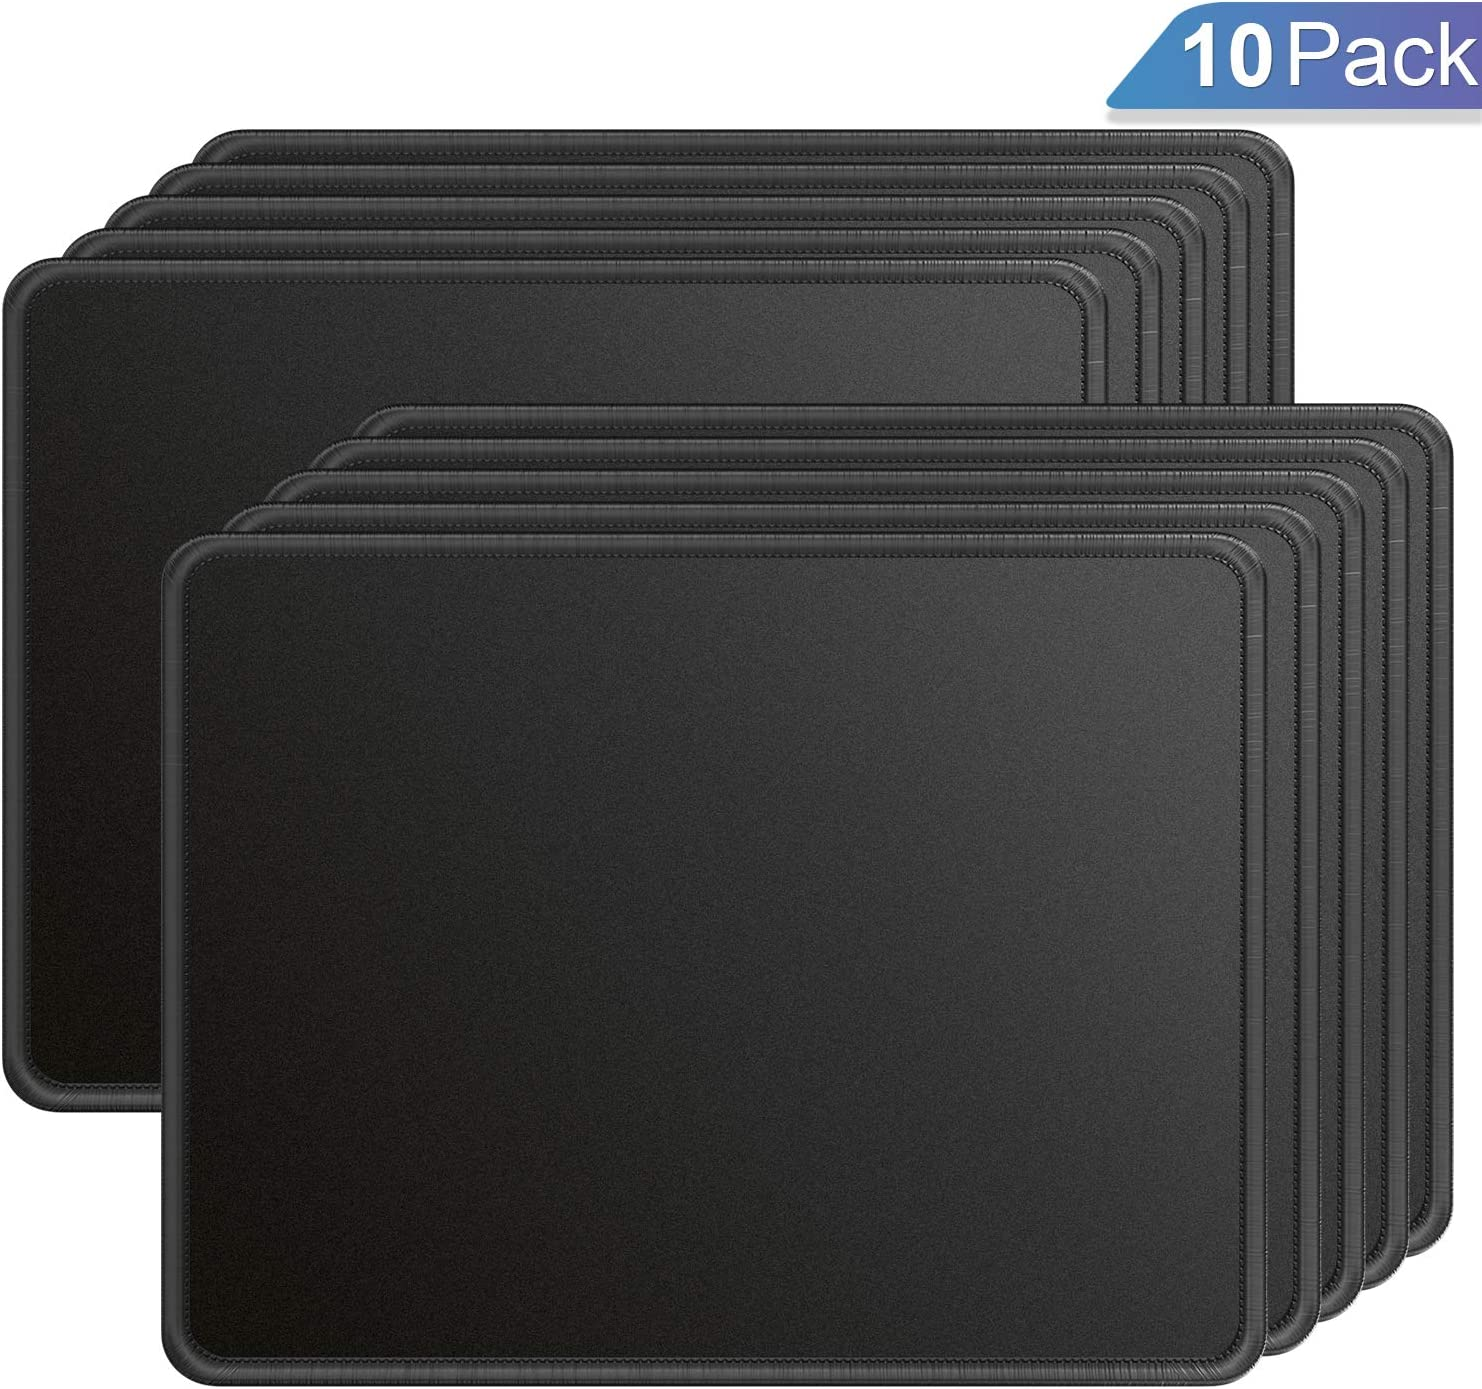 Ktrio 10 Pack Mouse Pad with Stitched Edges Mousepads Bulk with Lycra Cloth, Non-Slip Rubber Base, Waterproof Coating Mouse Pads for Computers, Laptop, Office & Home, 11x8.5in, 3mm, Black